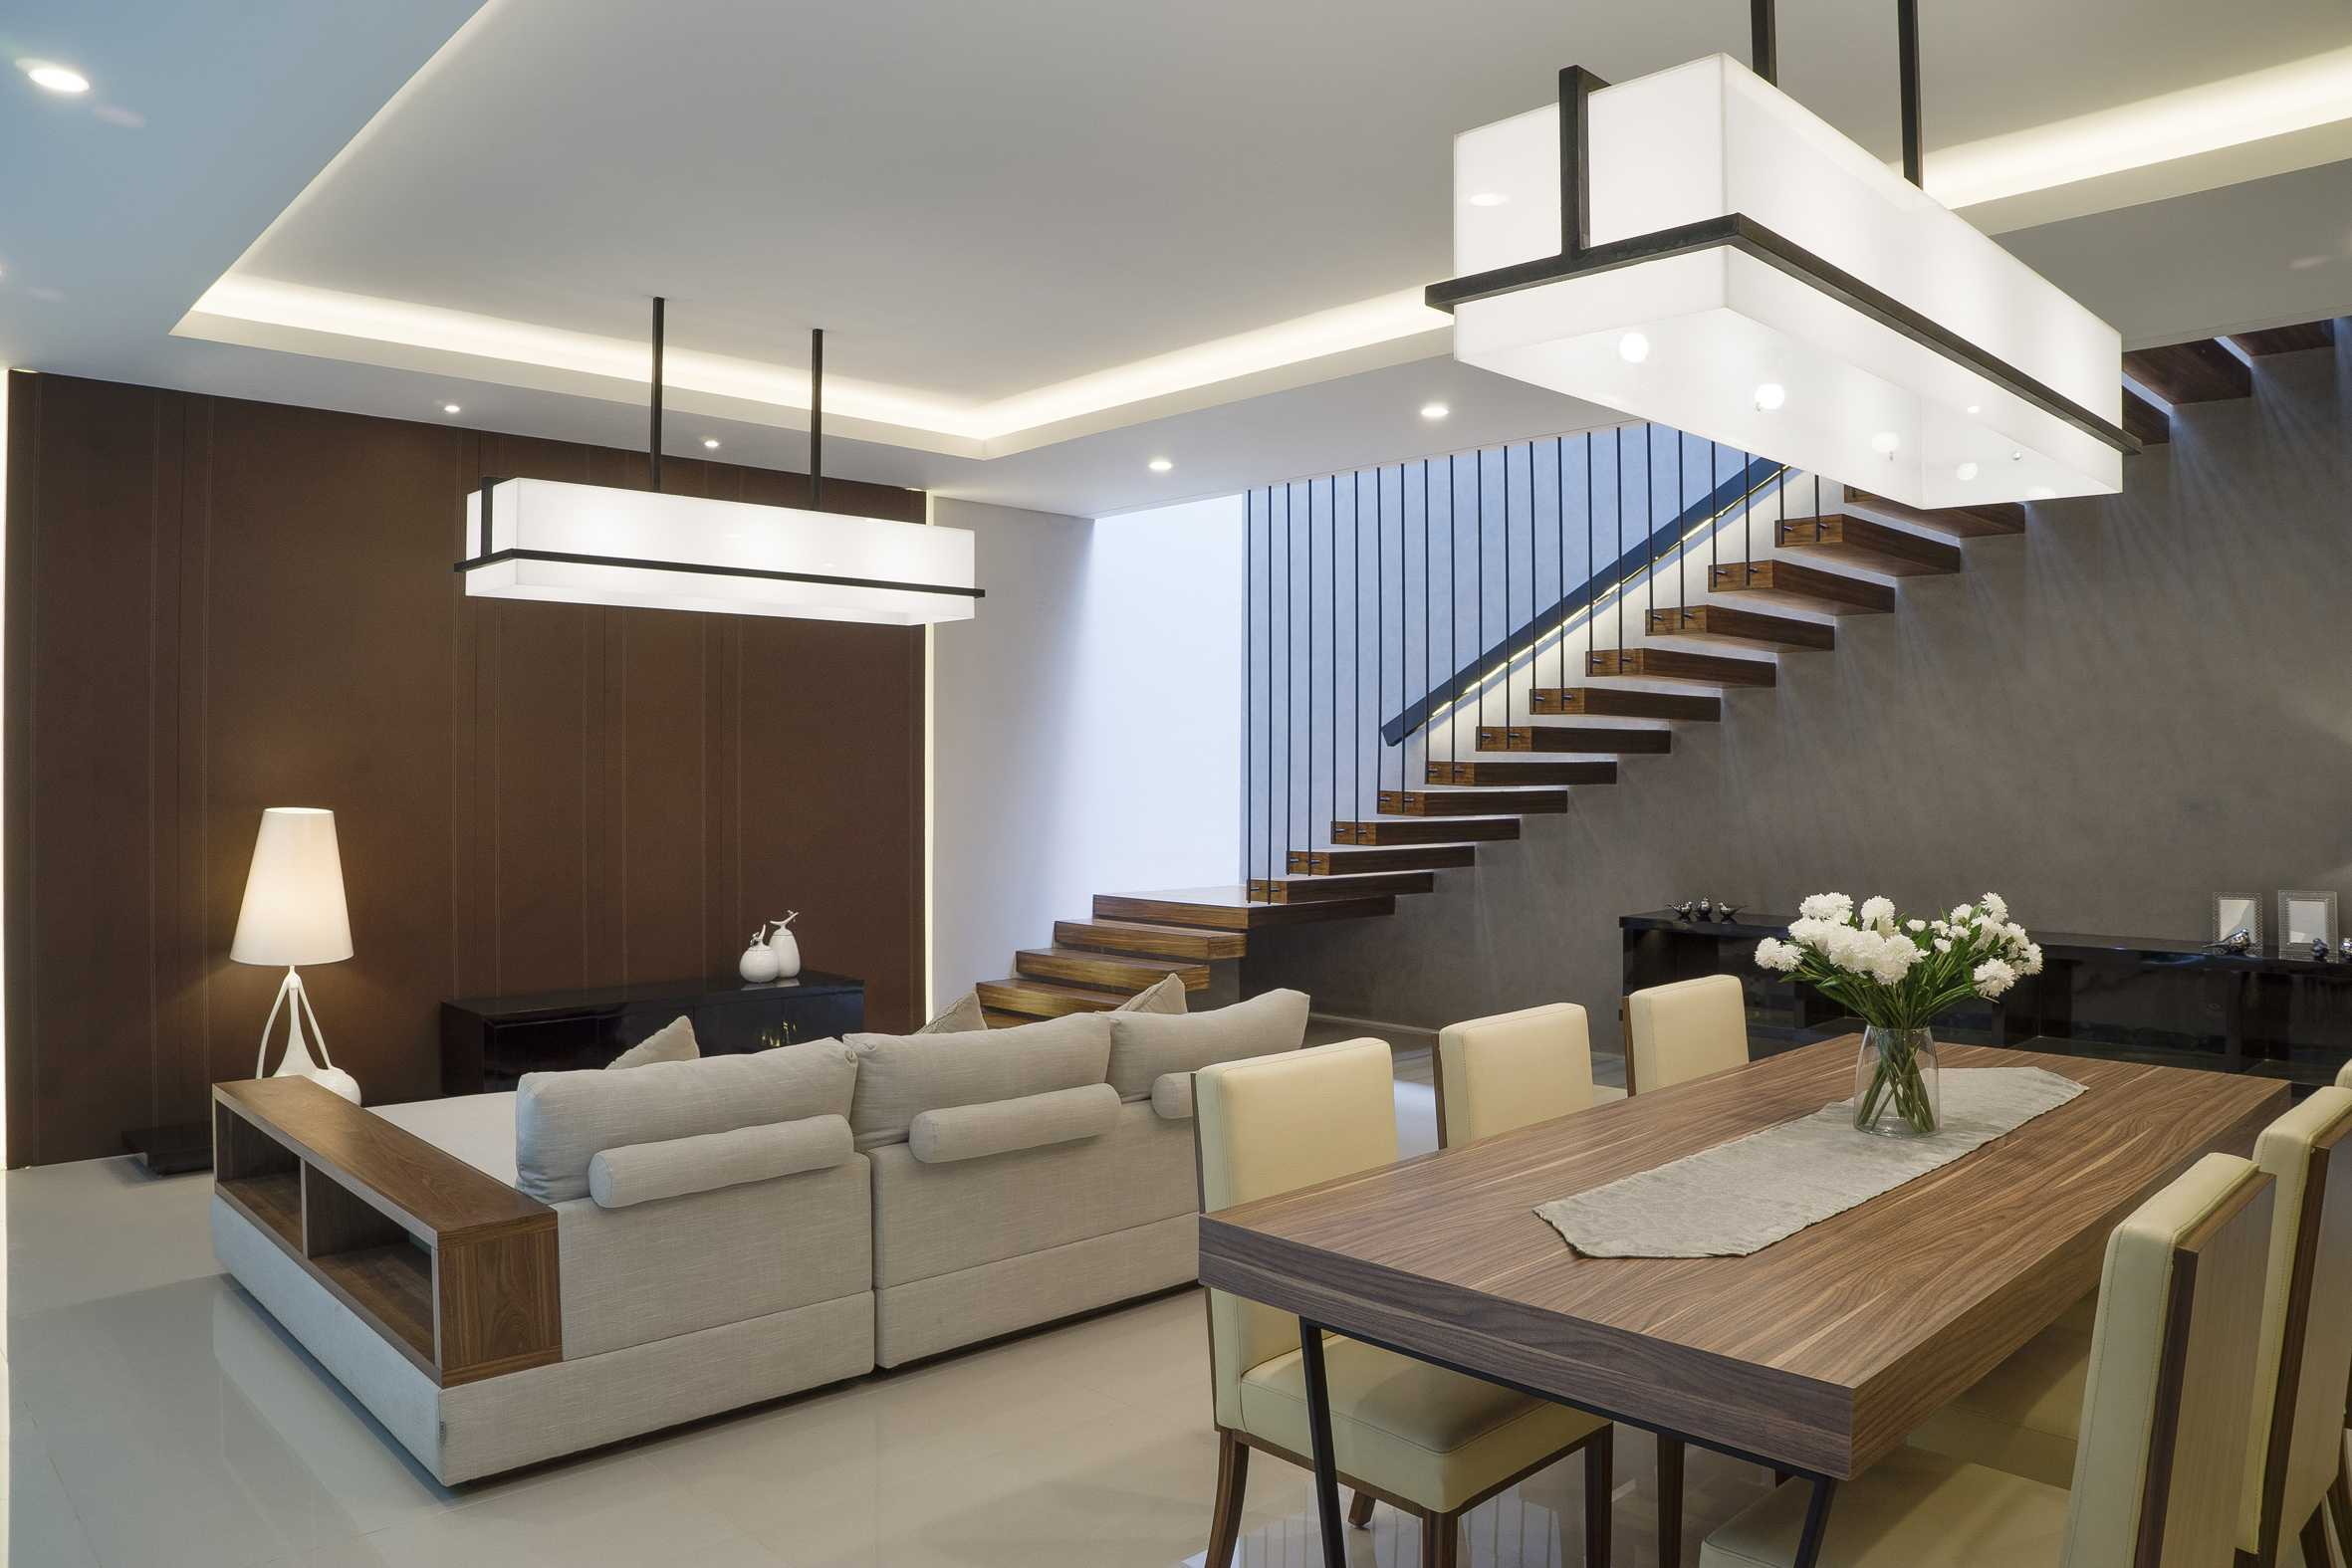 """Simple Projects Architecture """"s"""" House Pakuwon Indah, Surabaya - Indonesia Pakuwon Indah, Surabaya - Indonesia Living & Dining Room   32987"""